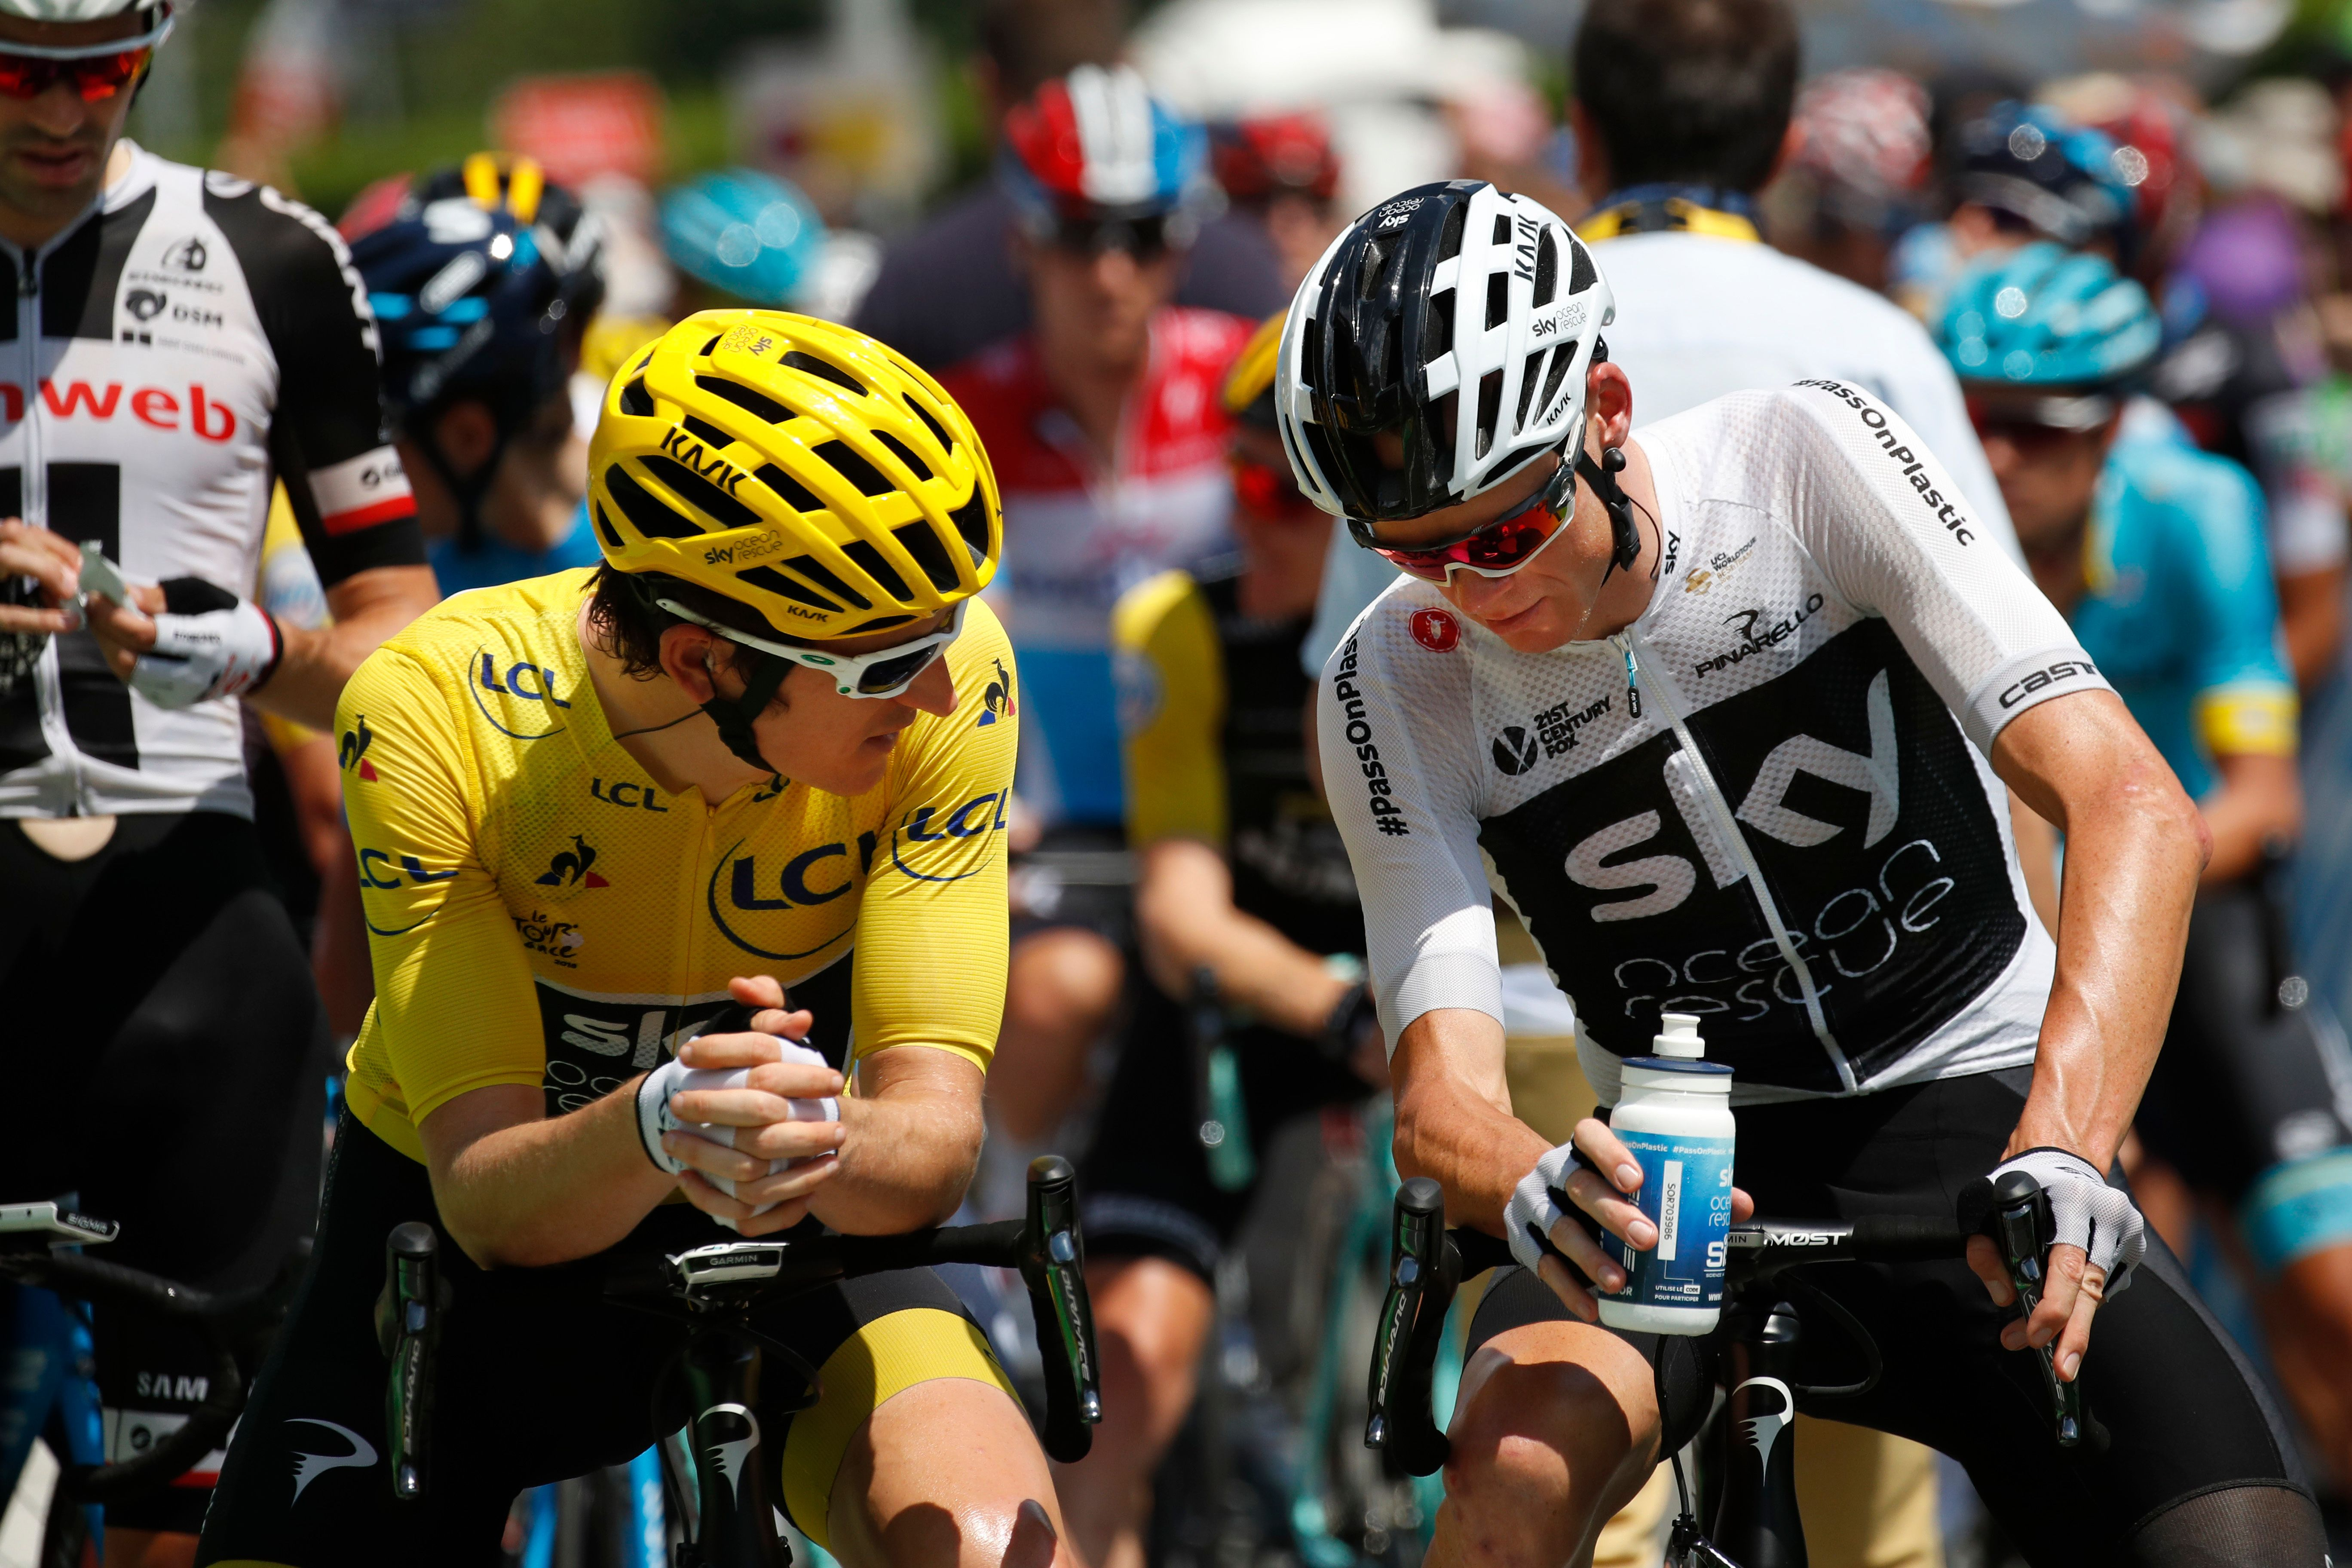 Froome cracks in the Pyrenees as Thomas solidifies Tour lead